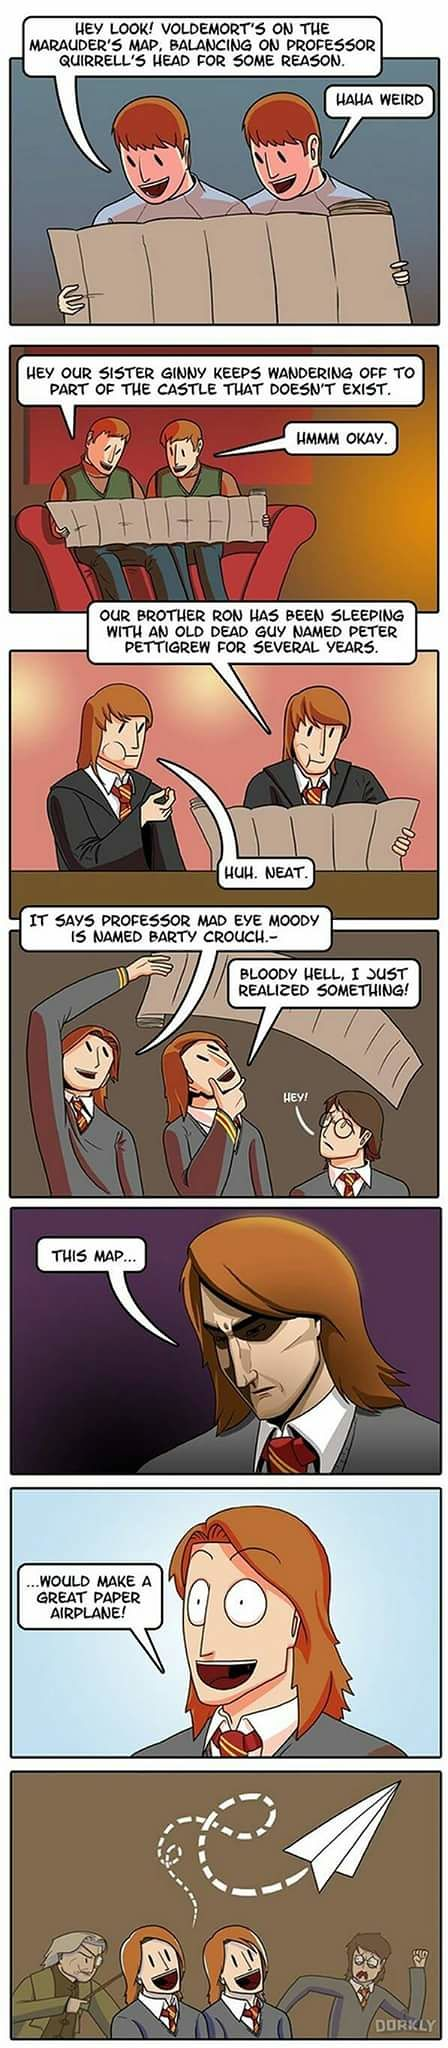 this-cartoon-explains-why-the-weasley-twins-never-noticed-any-funky-activity-on-the-maraud-807138